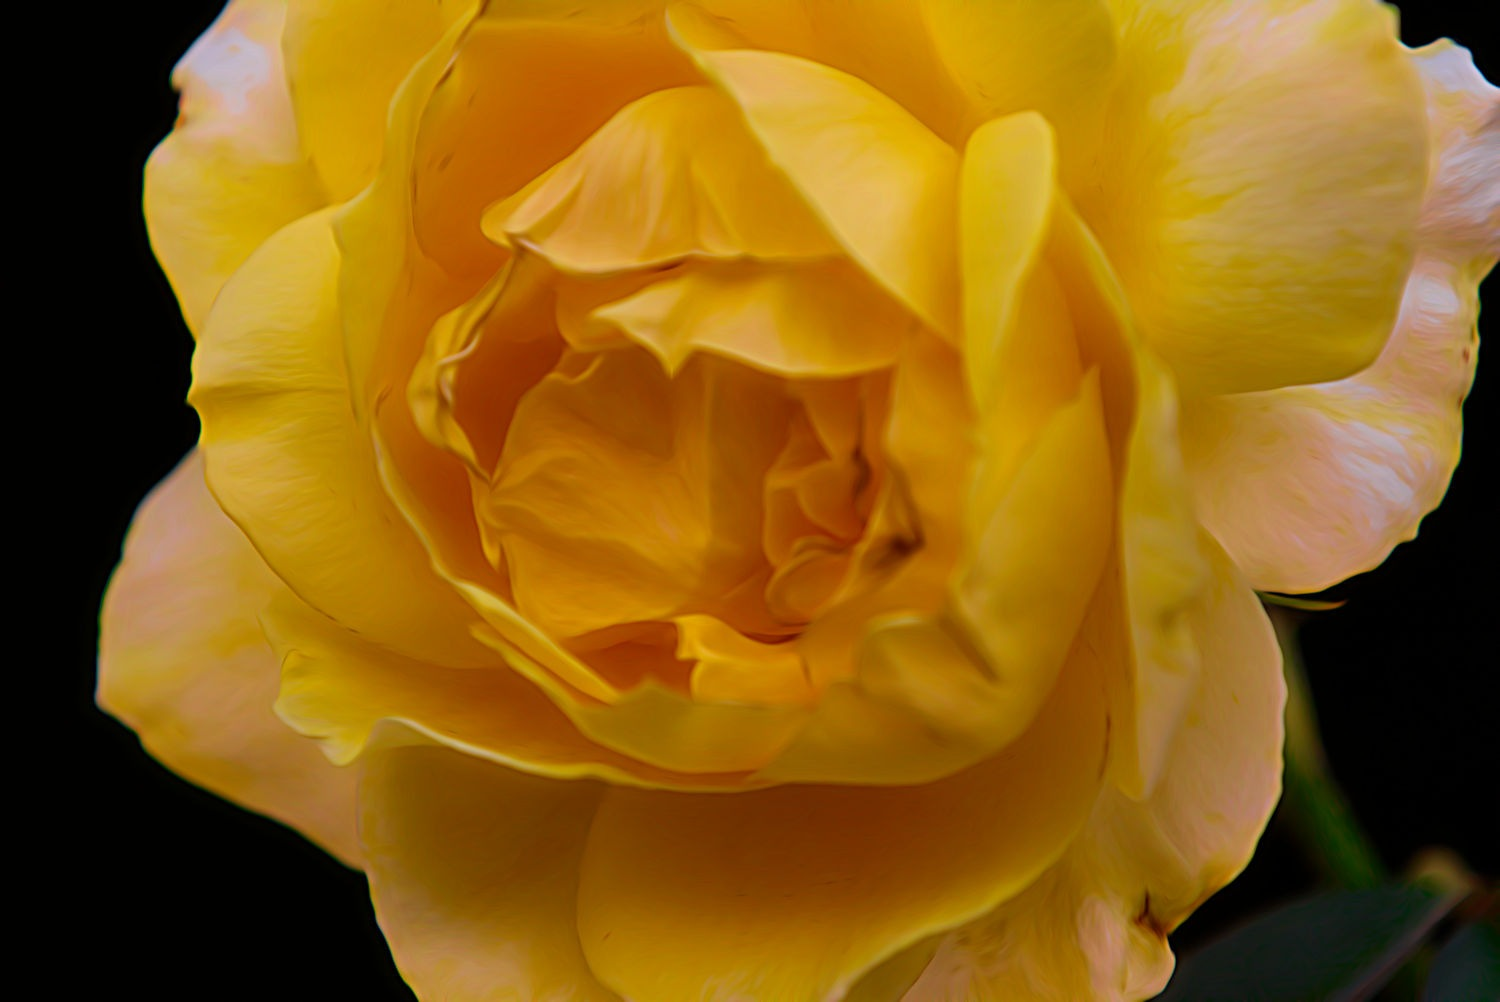 Yellow rose 2 by ochemodan